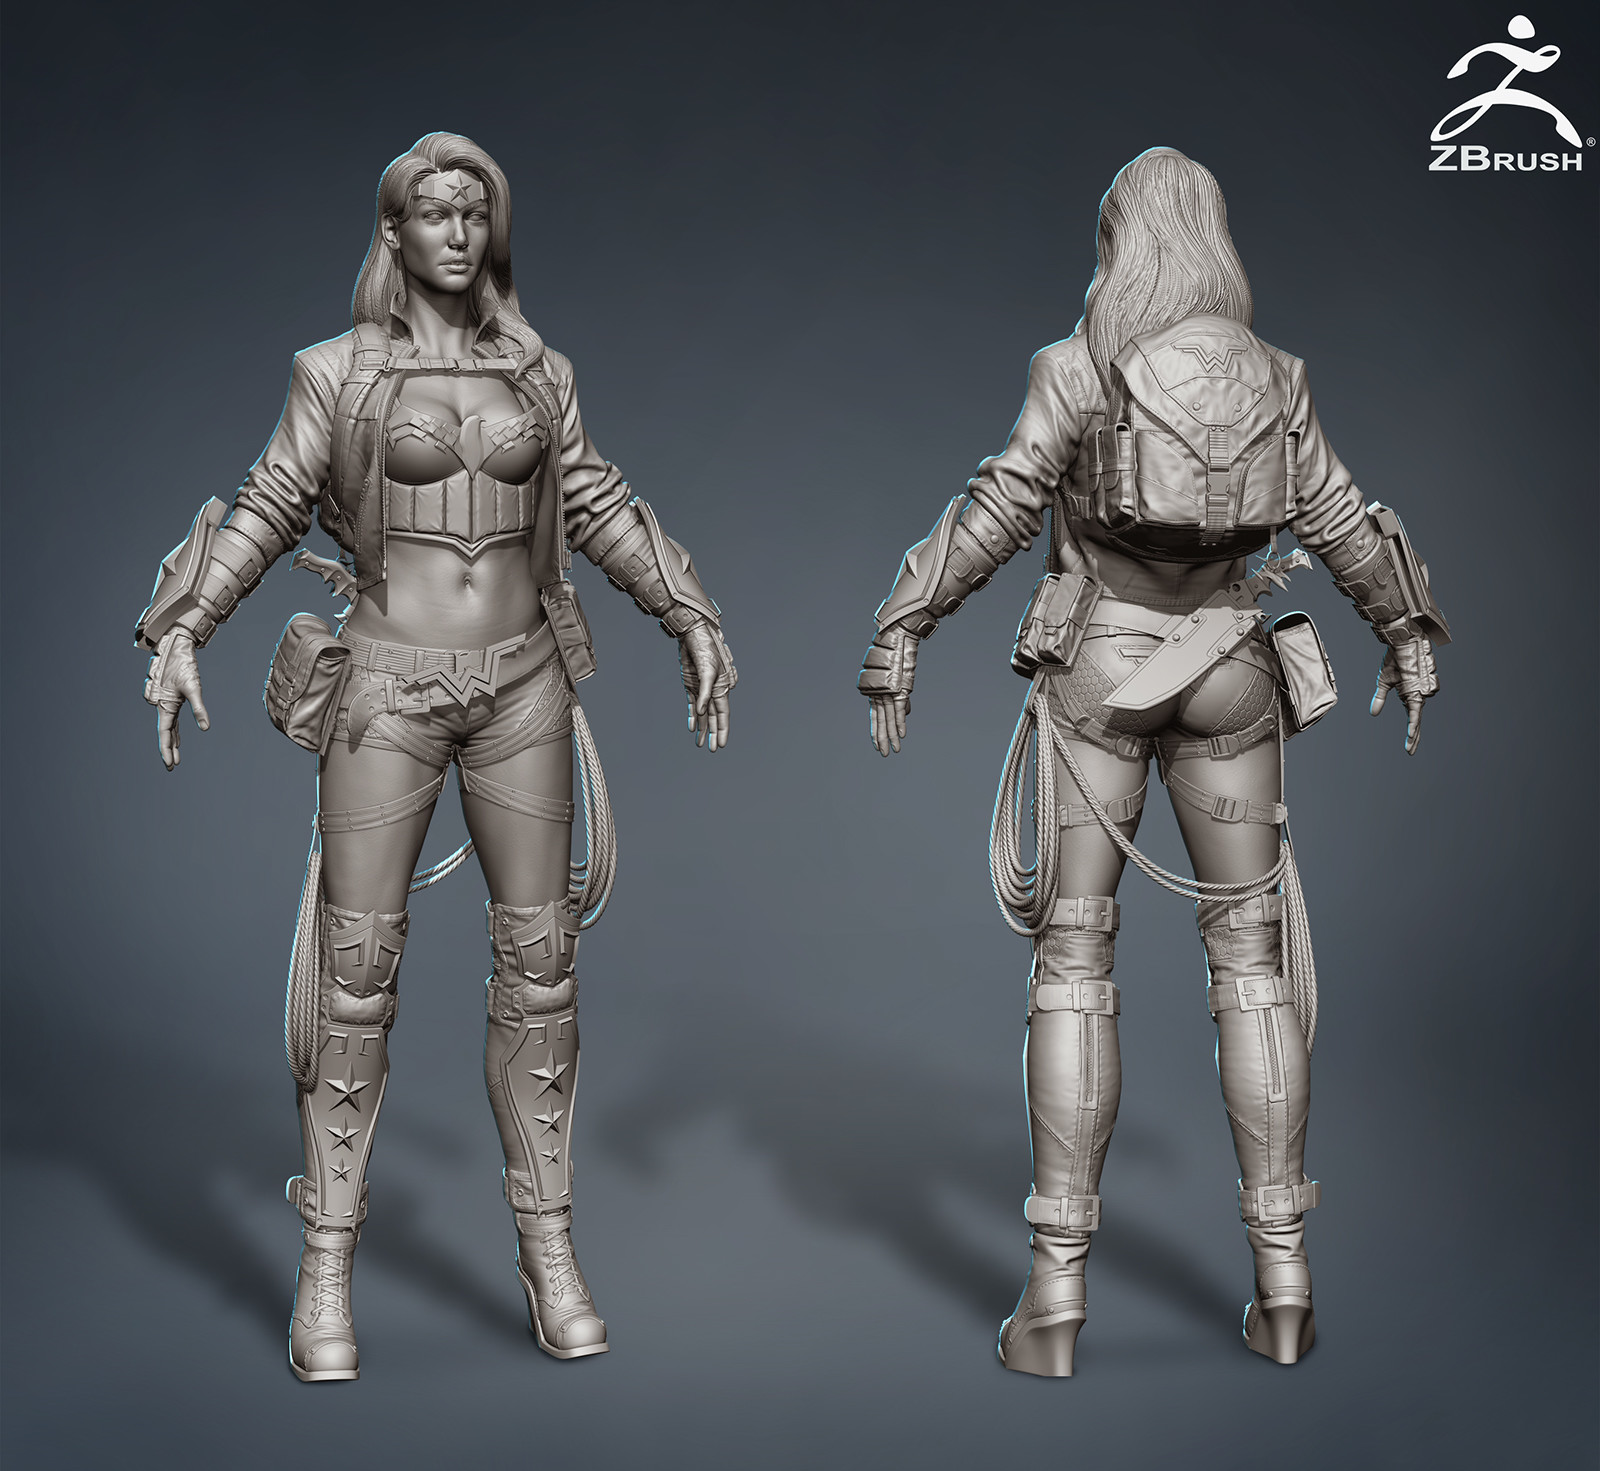 Wonder Woman Hires Sculpt